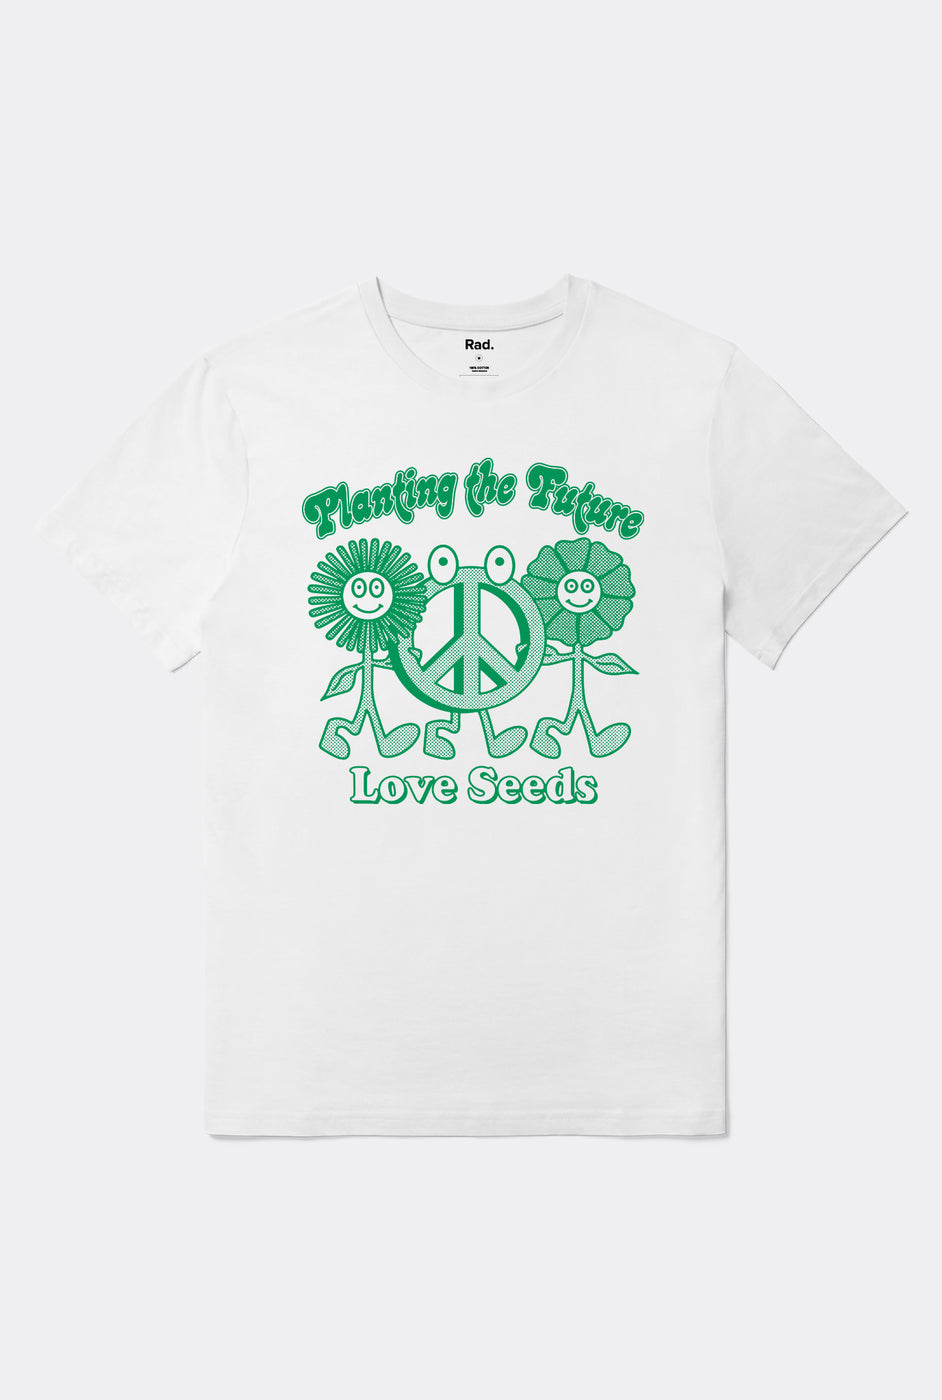 T-Shirt S/S Love Seeds